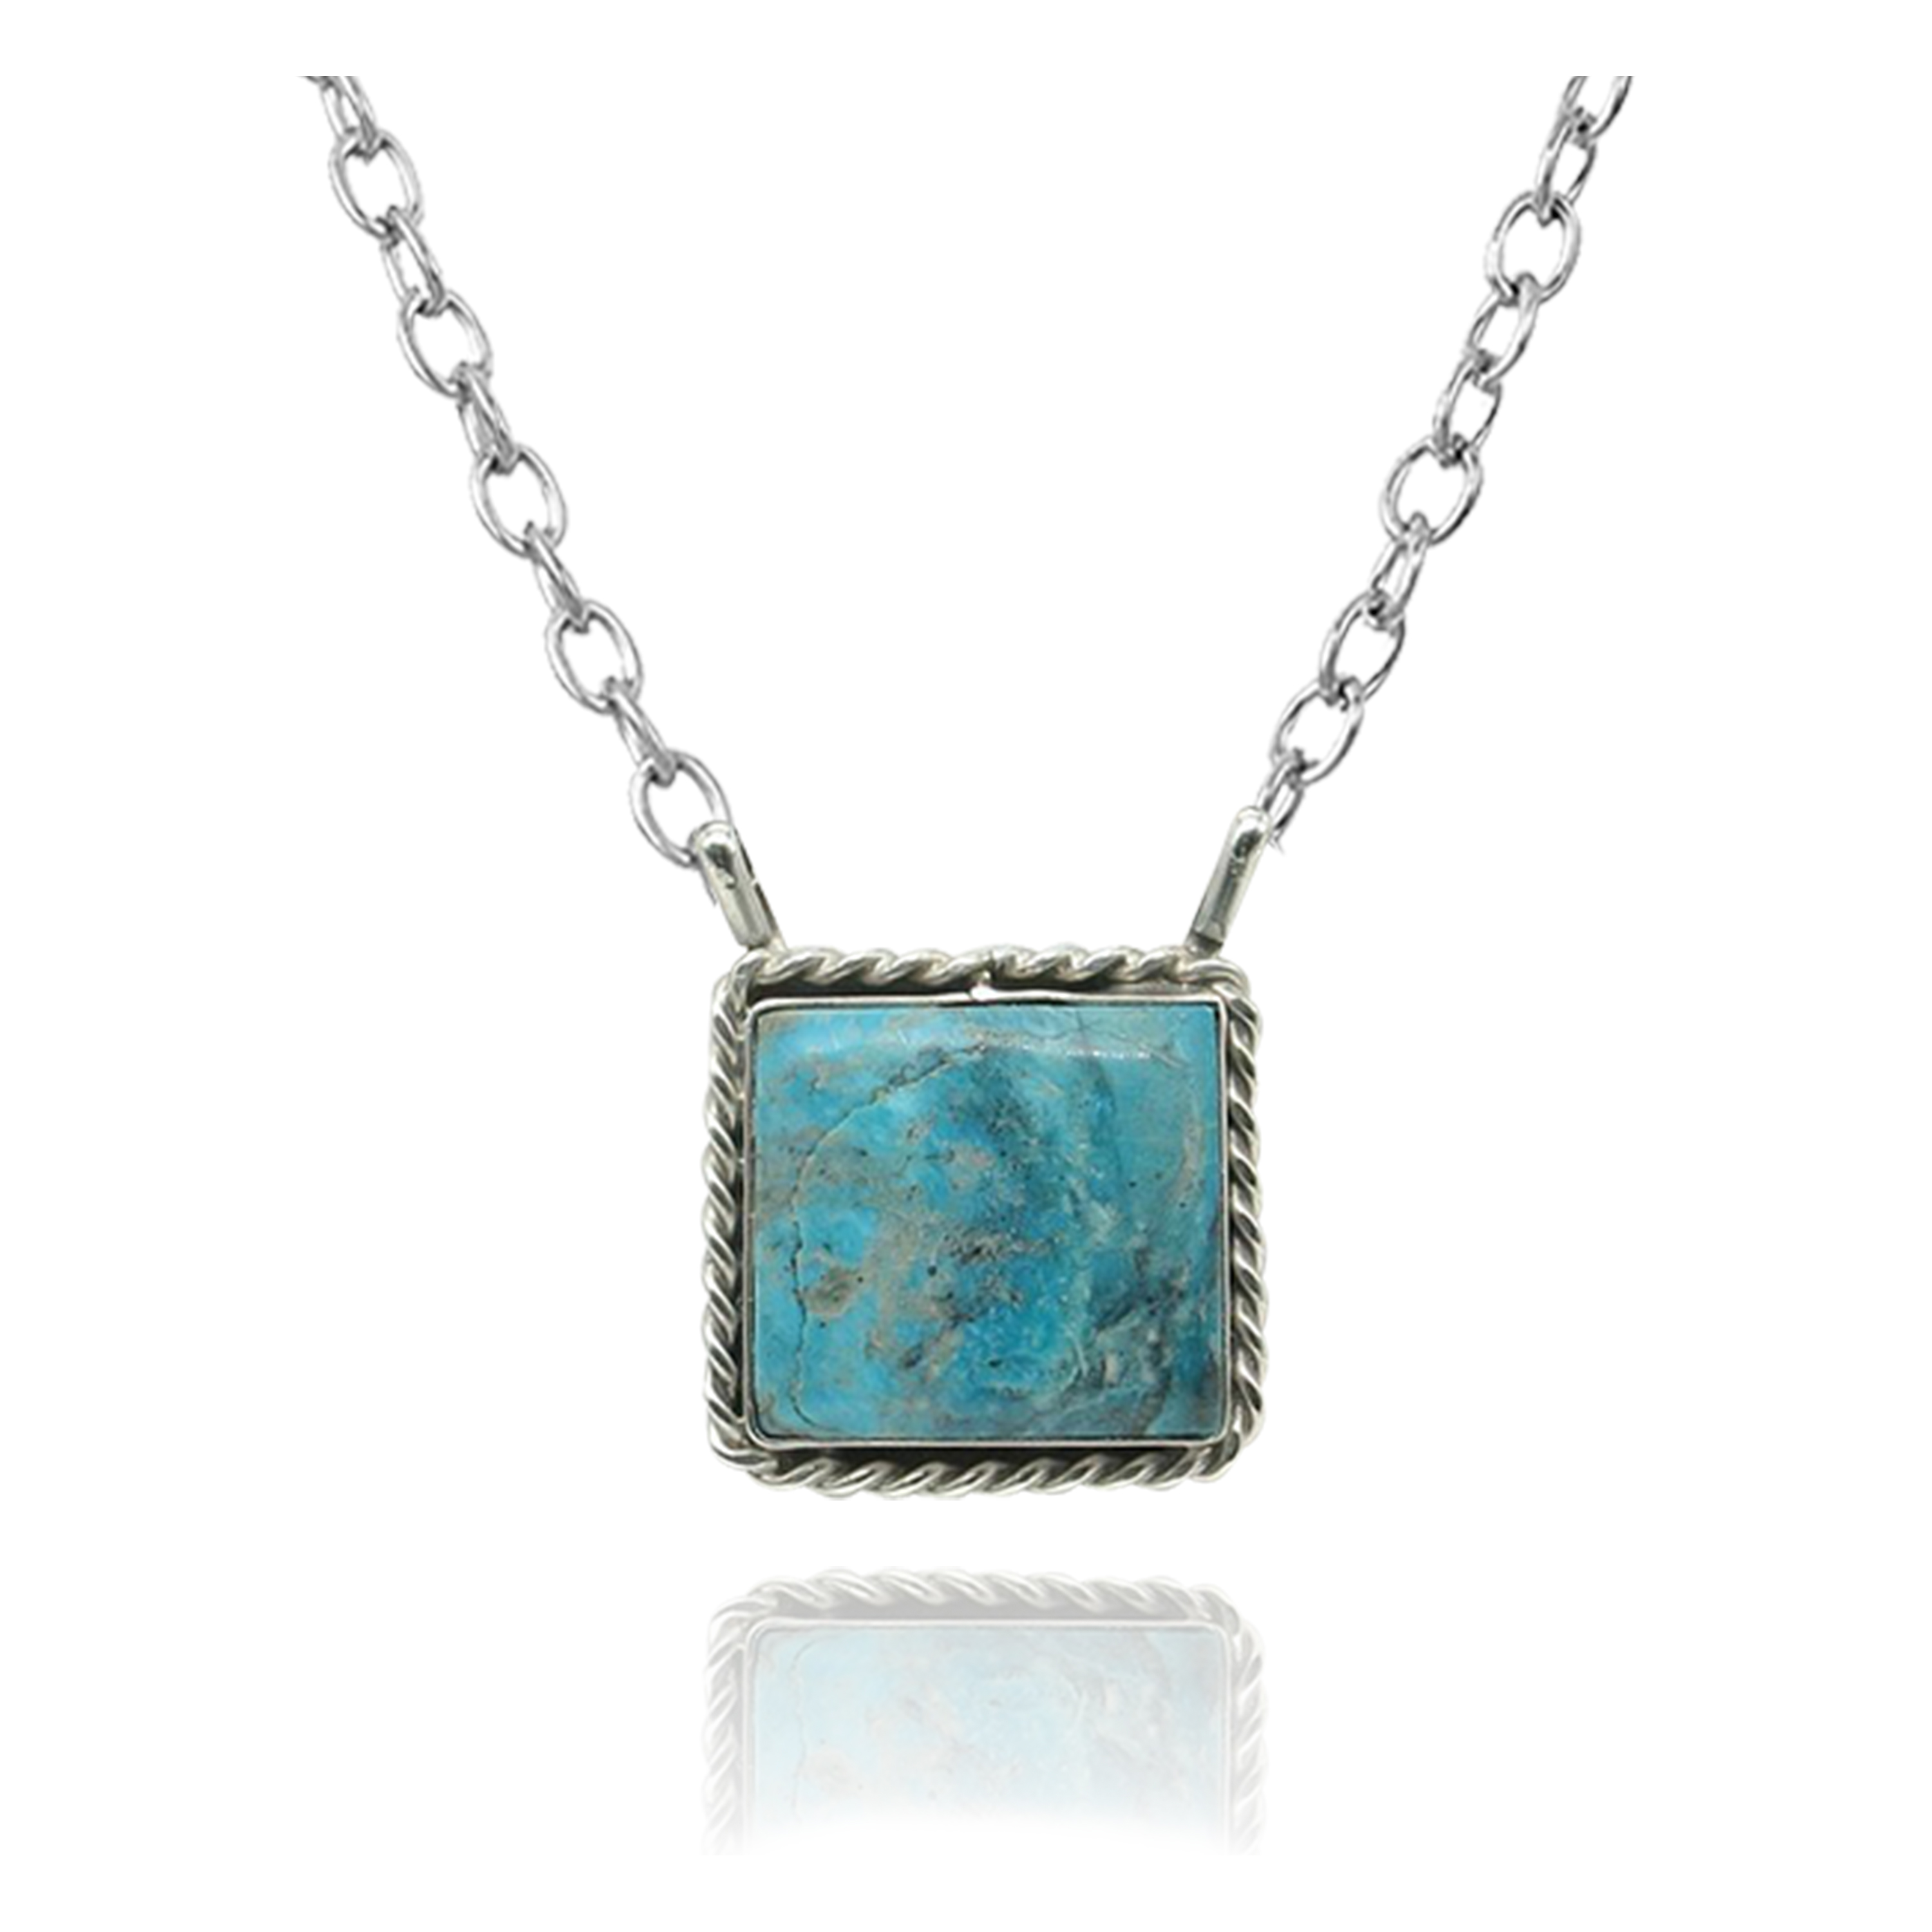 Delicate .925 Sterling Silver Certified Authentic Navajo Native American Natural Turquoise Necklace Pendant 35191